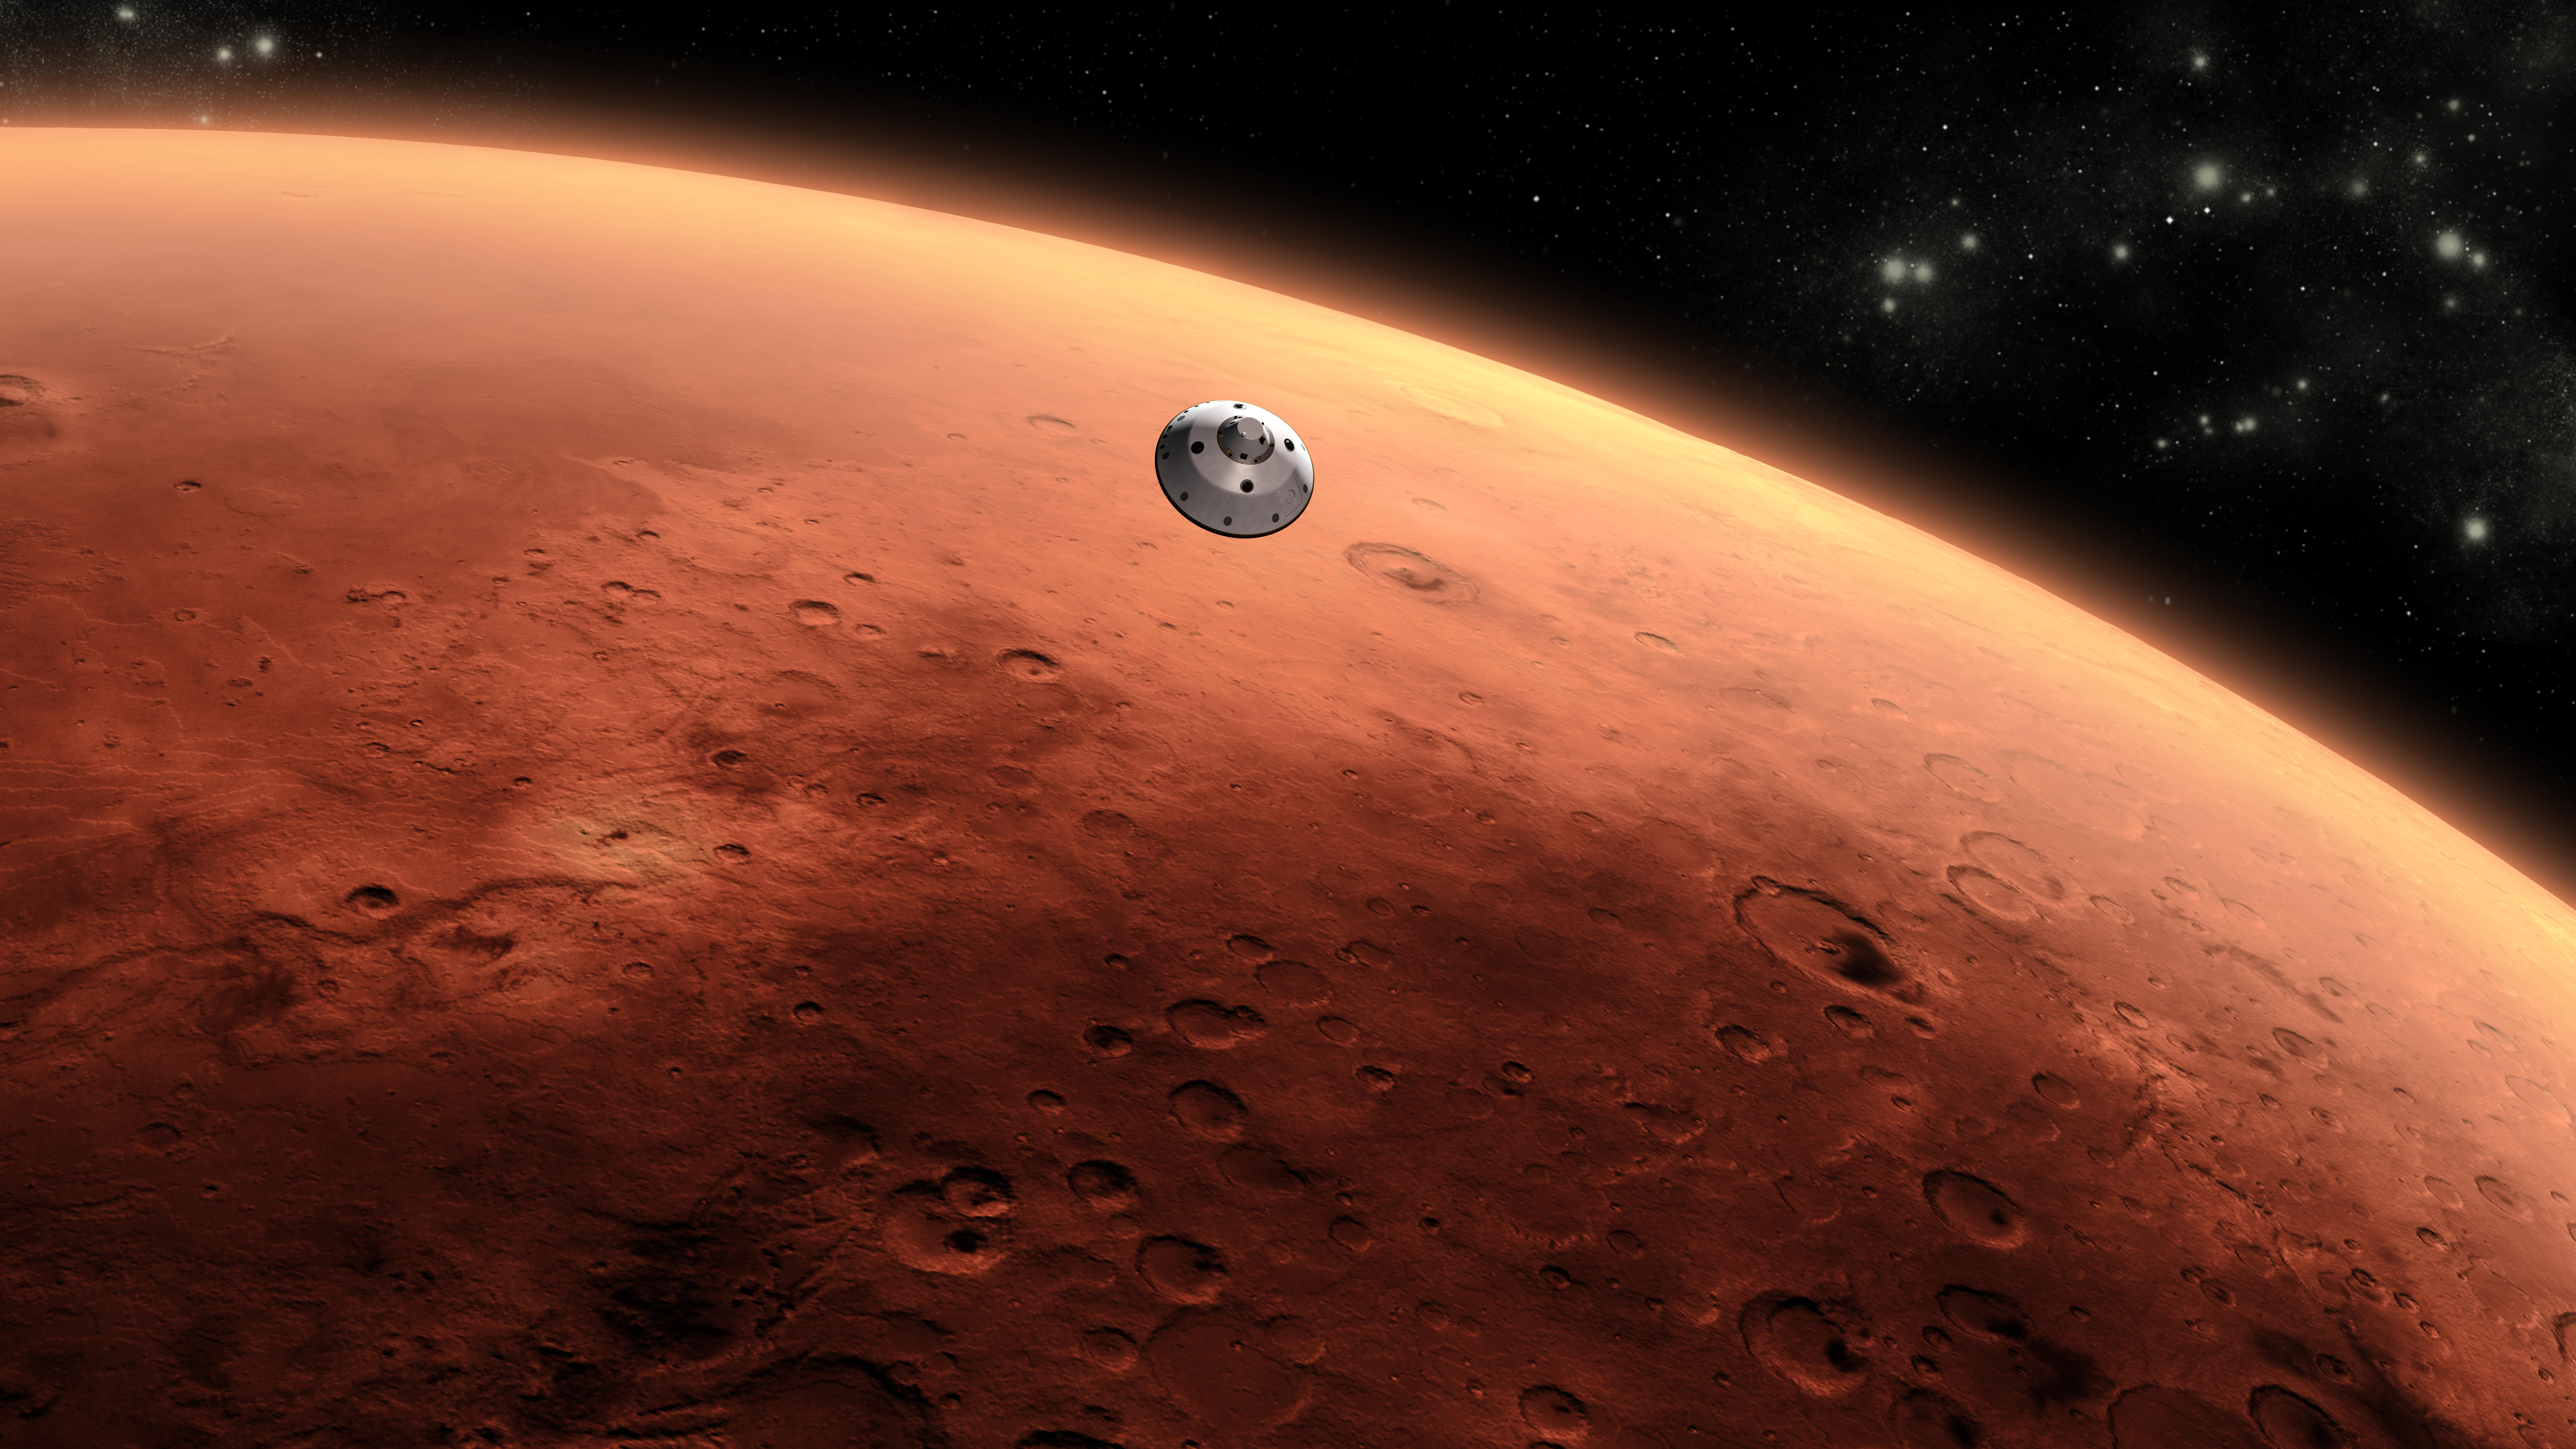 Space Images | Curiosity Approaching Mars, Artist's Concept